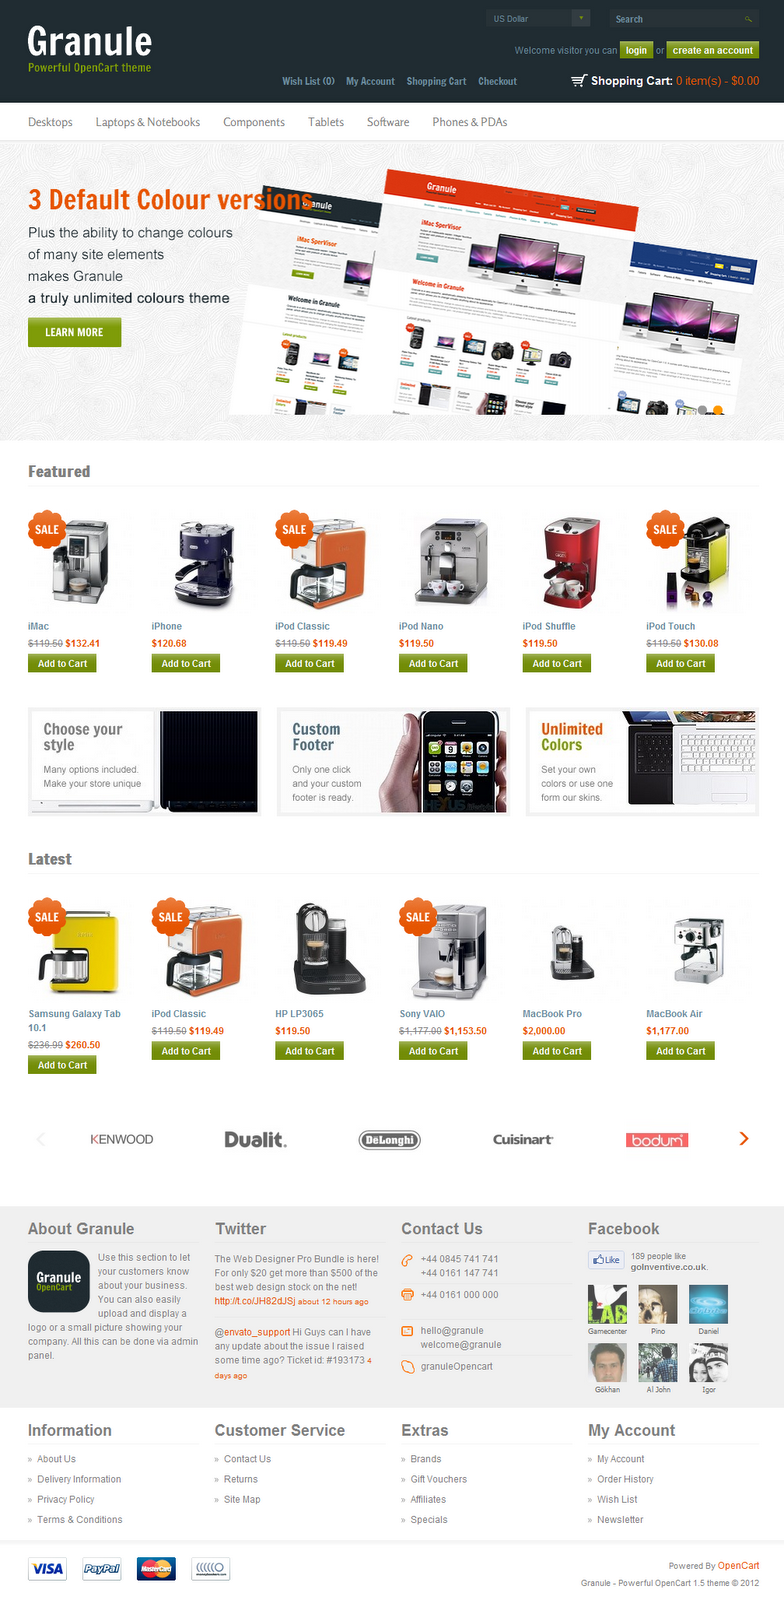 Ecommerce-powerful-OpenCart-theme